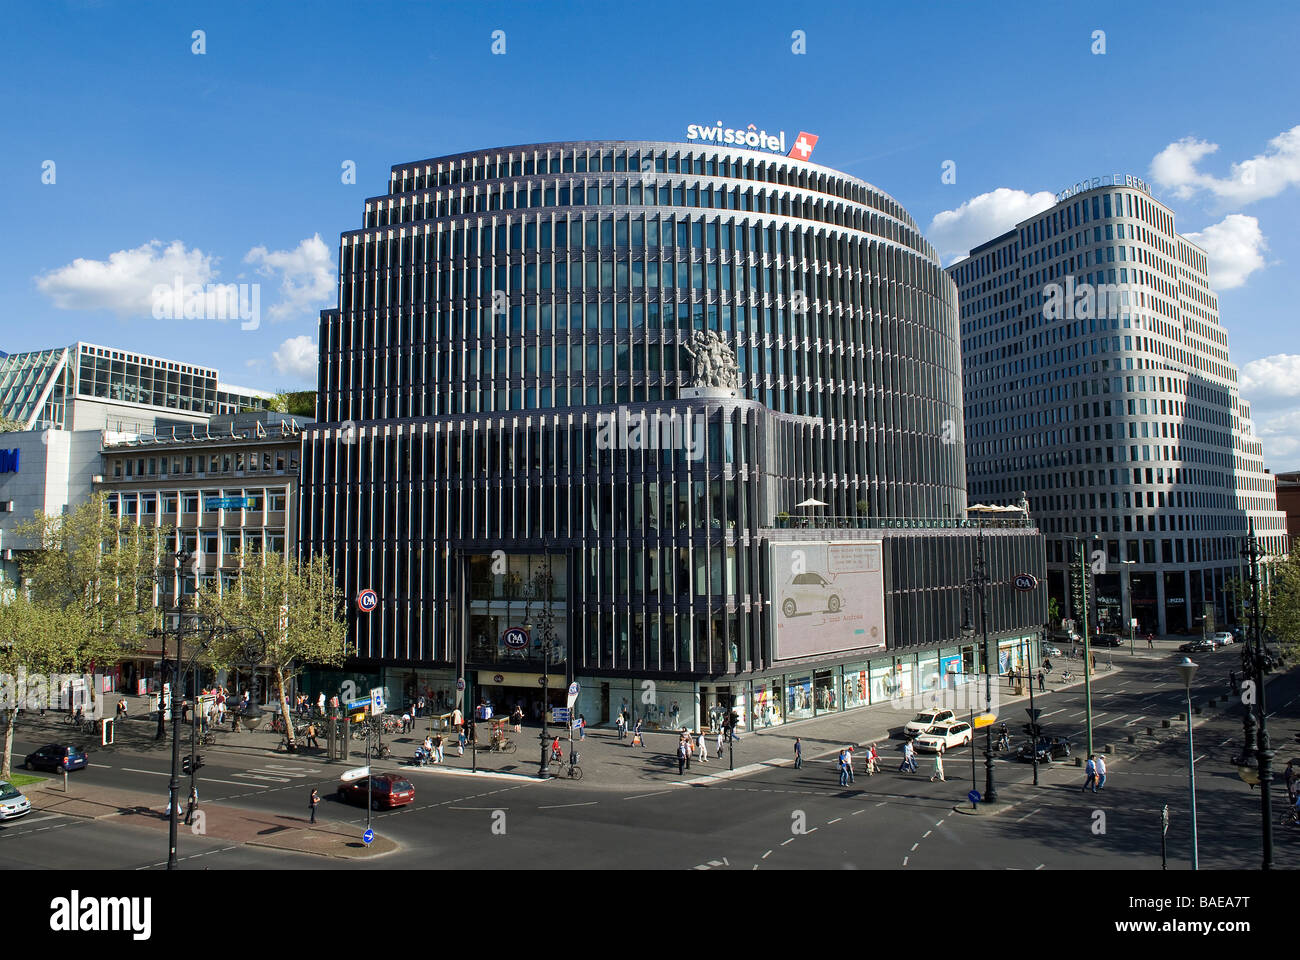 germany berlin ku 39 damm eck and c a store and swissotel berlin gmp stock photo 23672316 alamy. Black Bedroom Furniture Sets. Home Design Ideas